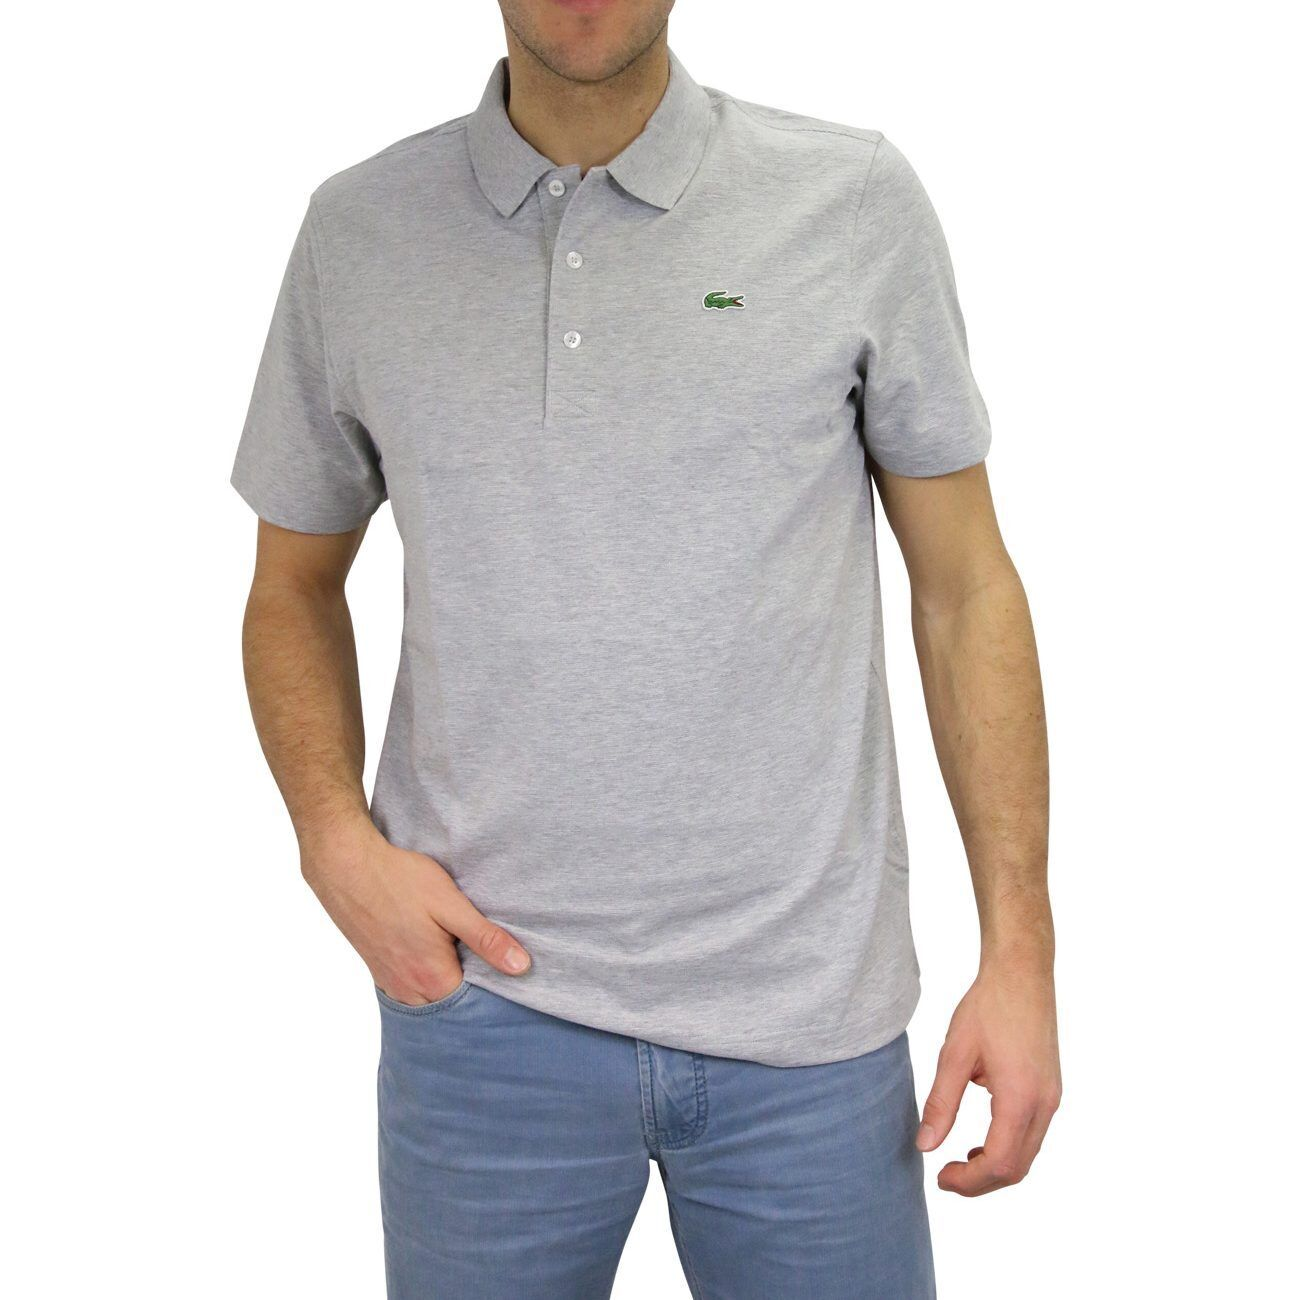 Lacoste sport tennis regular fit polo polo polo manches courtes hommes l1230